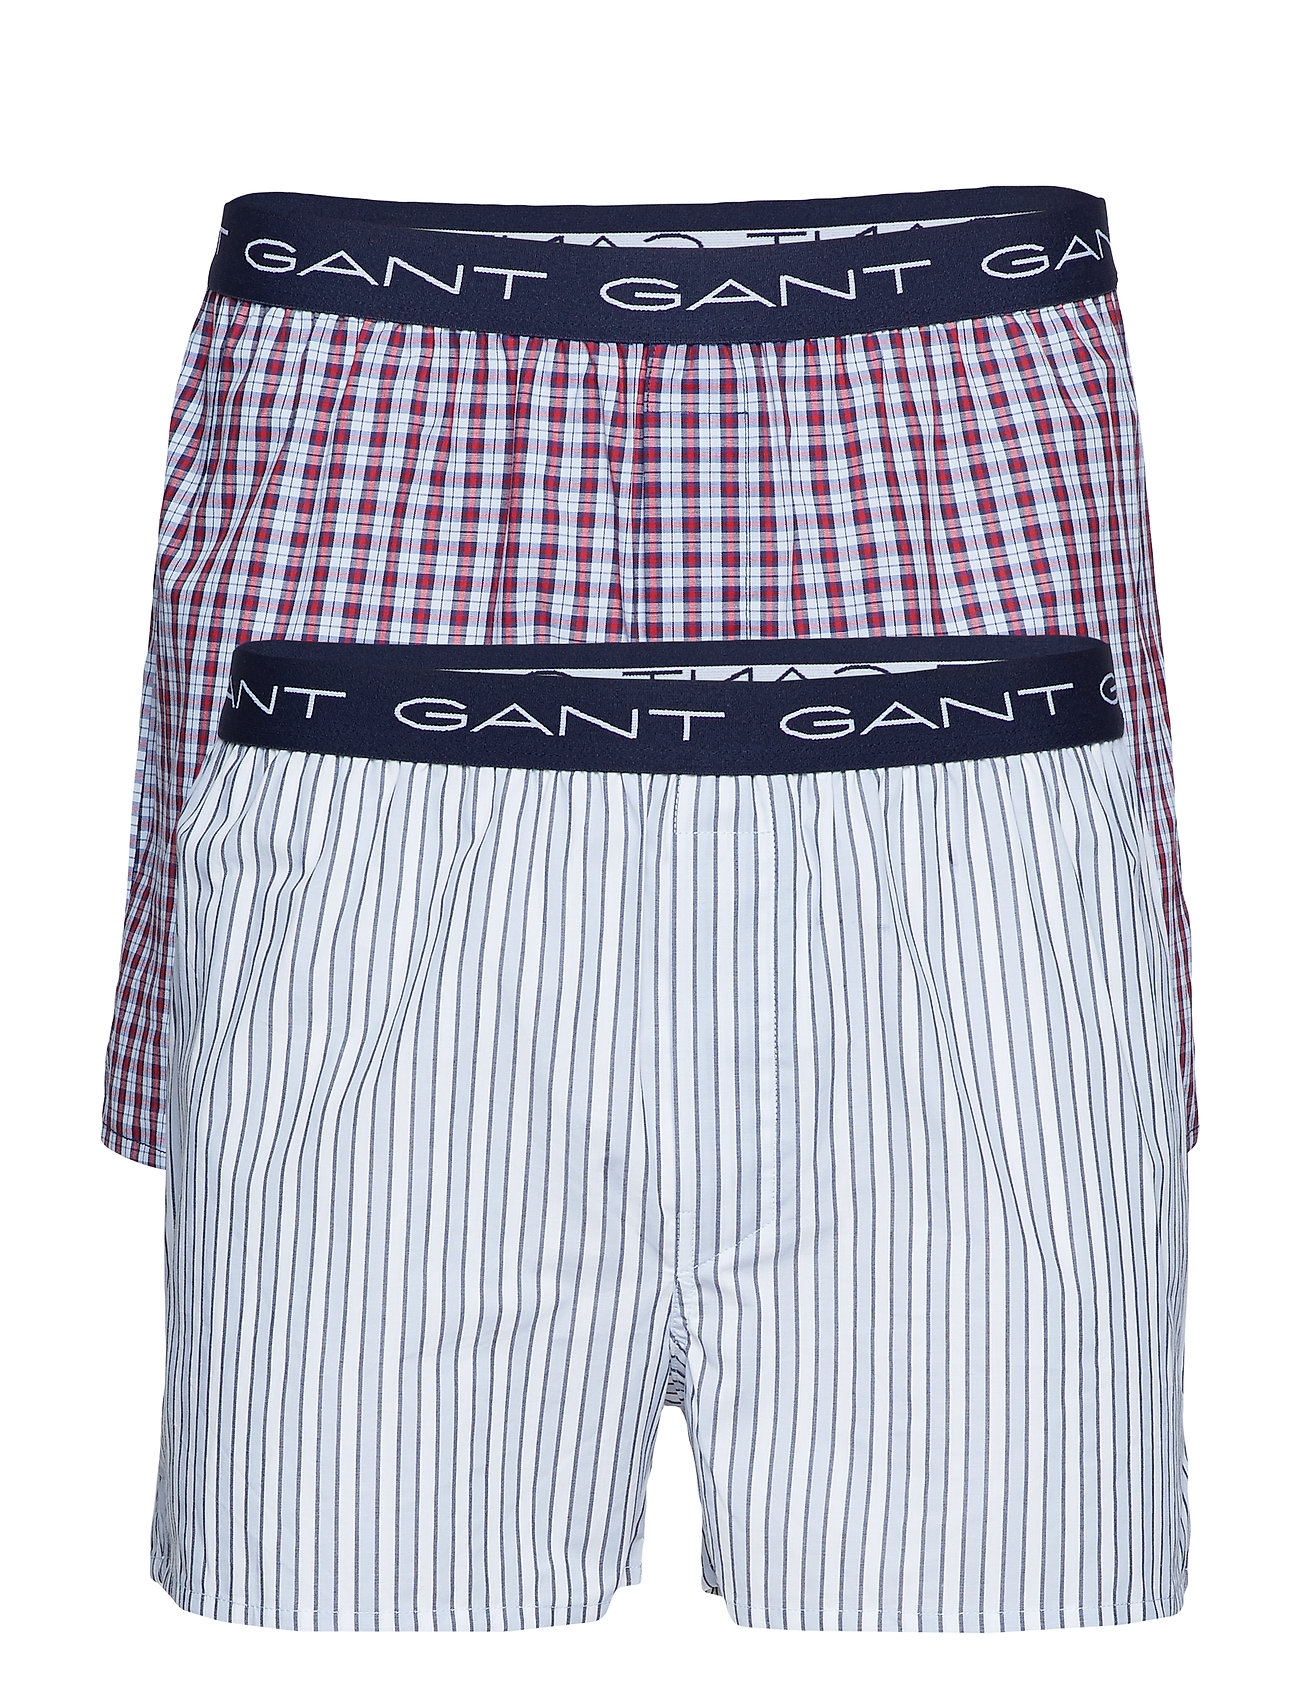 Gant 2-PACK BOX SH. STRIPE/CHECK LOGO - WHITE